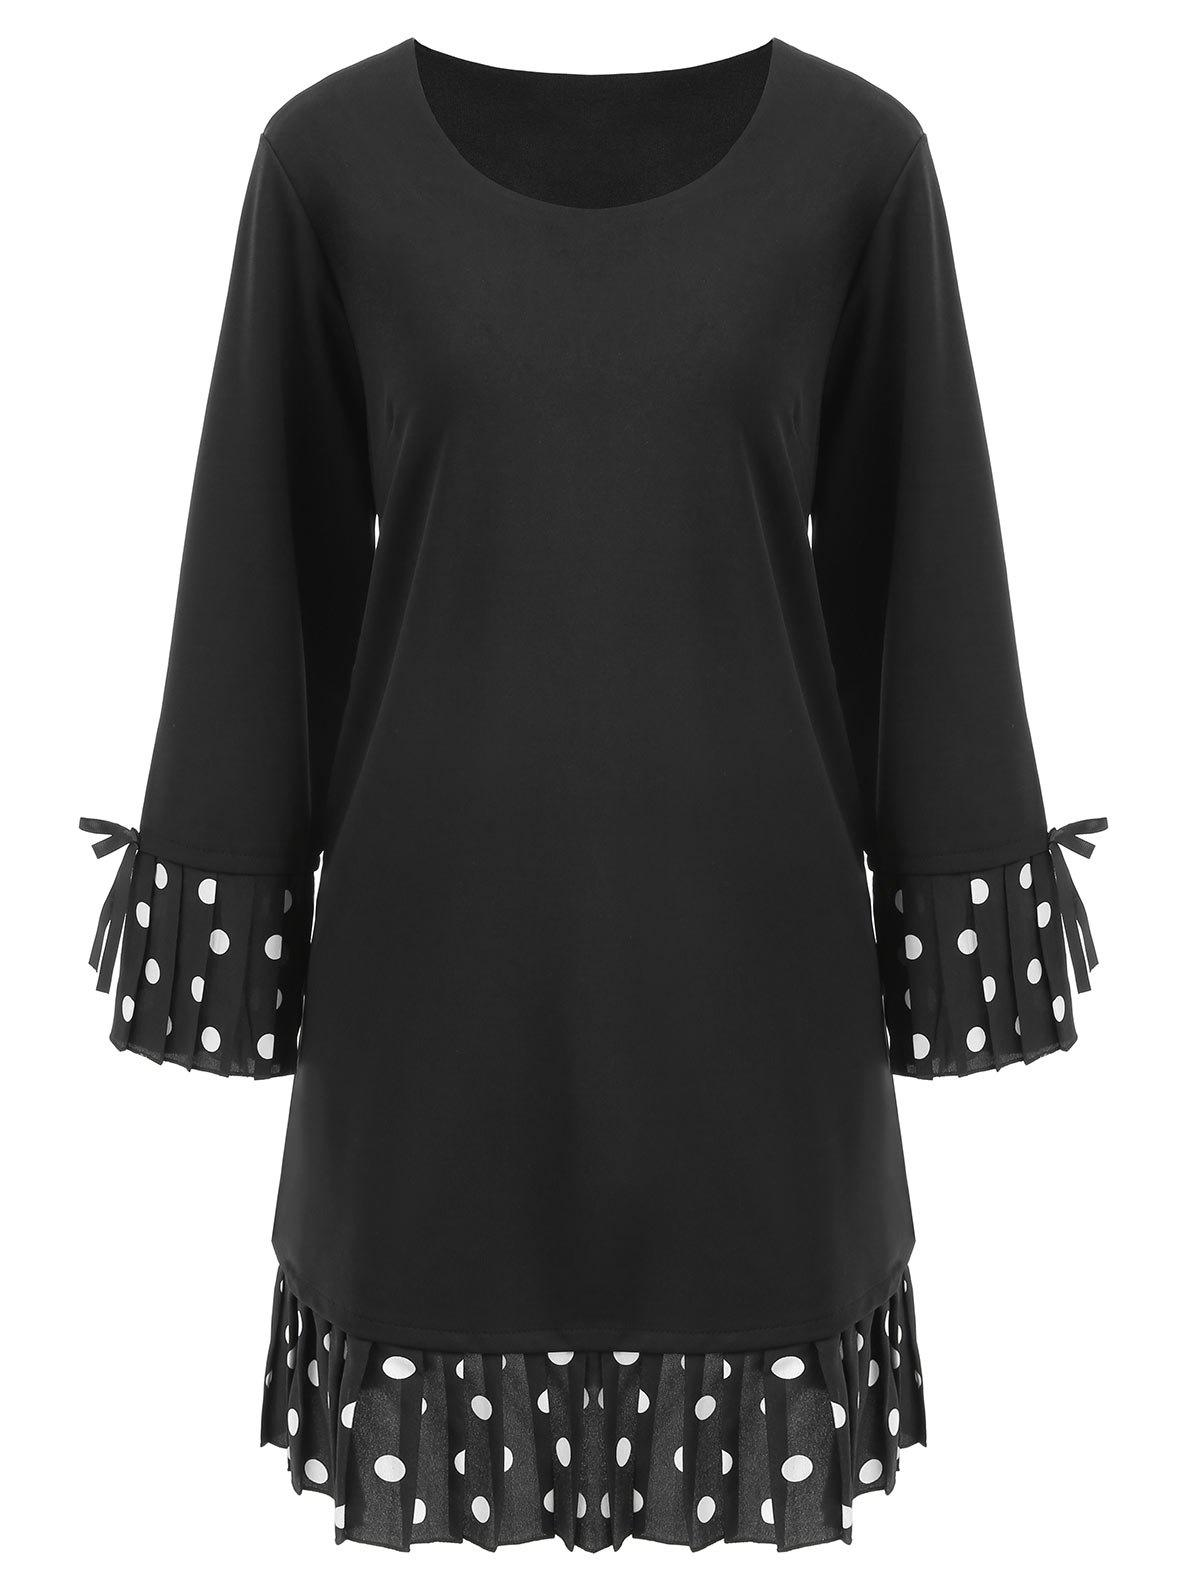 Plus Size Polka Dot Bell Sleeve DressWOMEN<br><br>Size: 4XL; Color: BLACK; Style: Casual; Material: Cotton,Polyester; Silhouette: Straight; Dresses Length: Knee-Length; Neckline: Round Collar; Sleeve Length: Long Sleeves; Embellishment: Bowknot,Pleated; Pattern Type: Polka Dot; With Belt: No; Season: Fall; Weight: 0.5550kg; Package Contents: 1 x Dress;